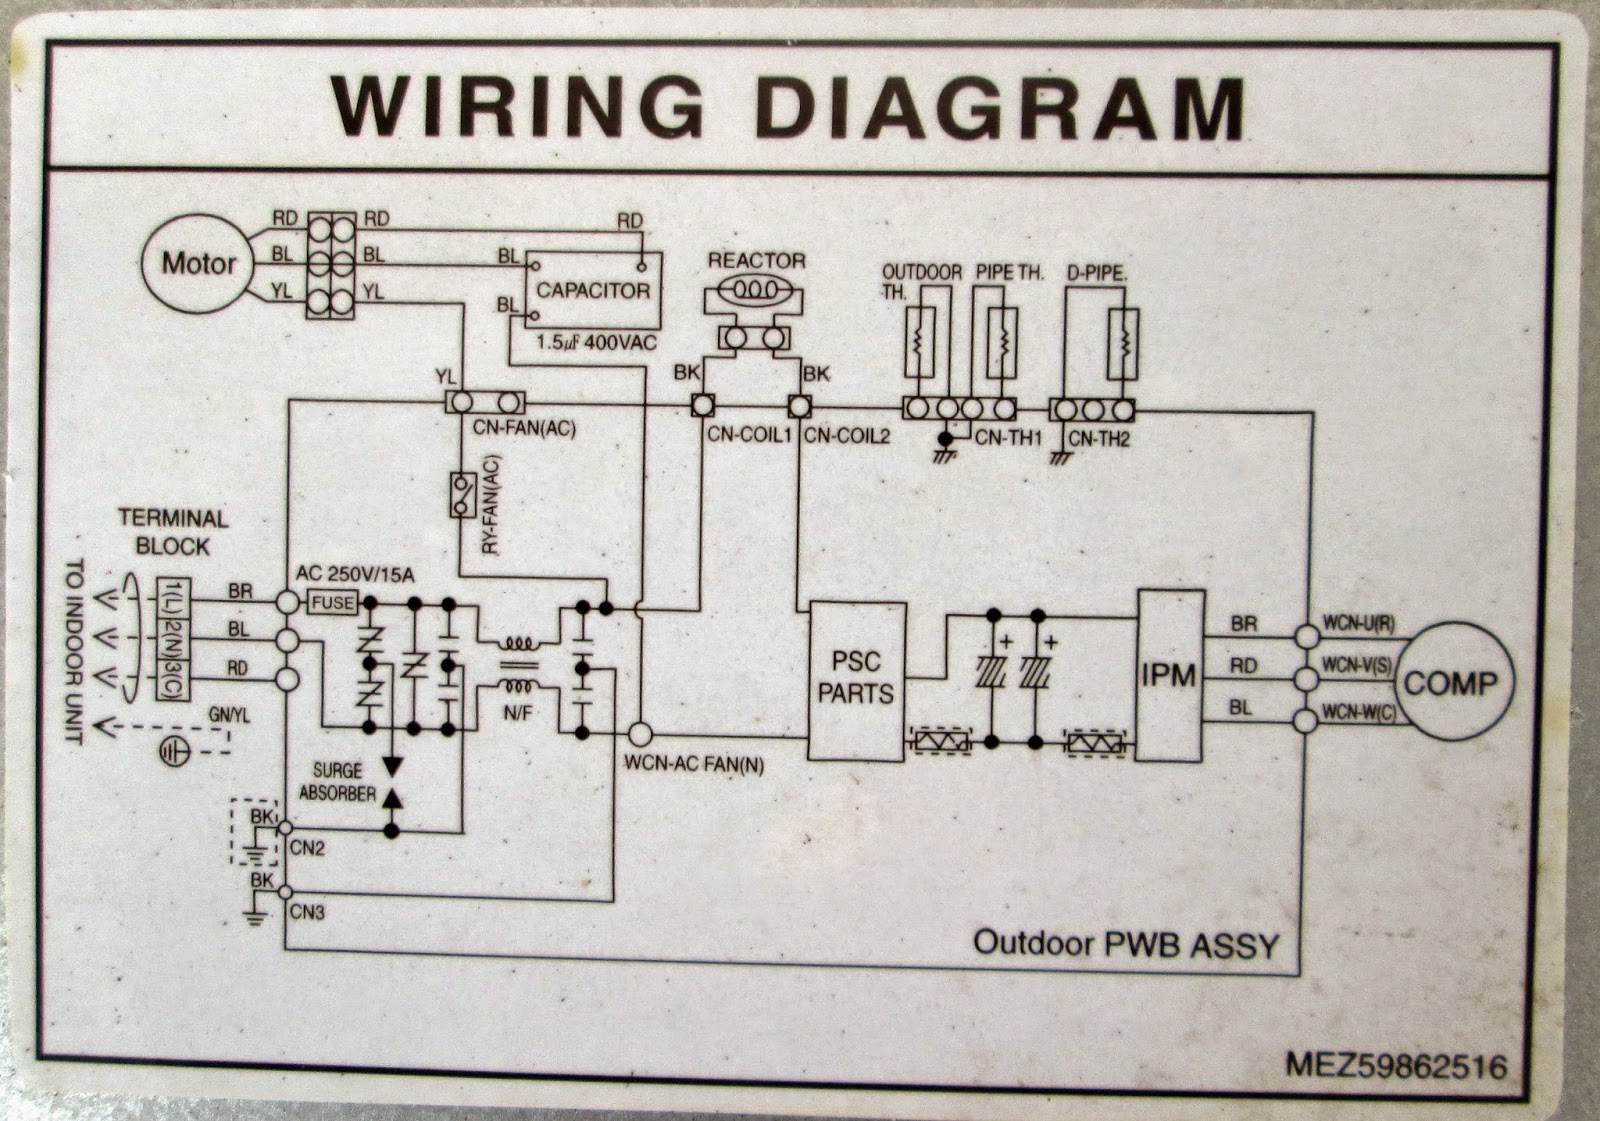 Wiring Diagram Ac Split Daikin Inverter